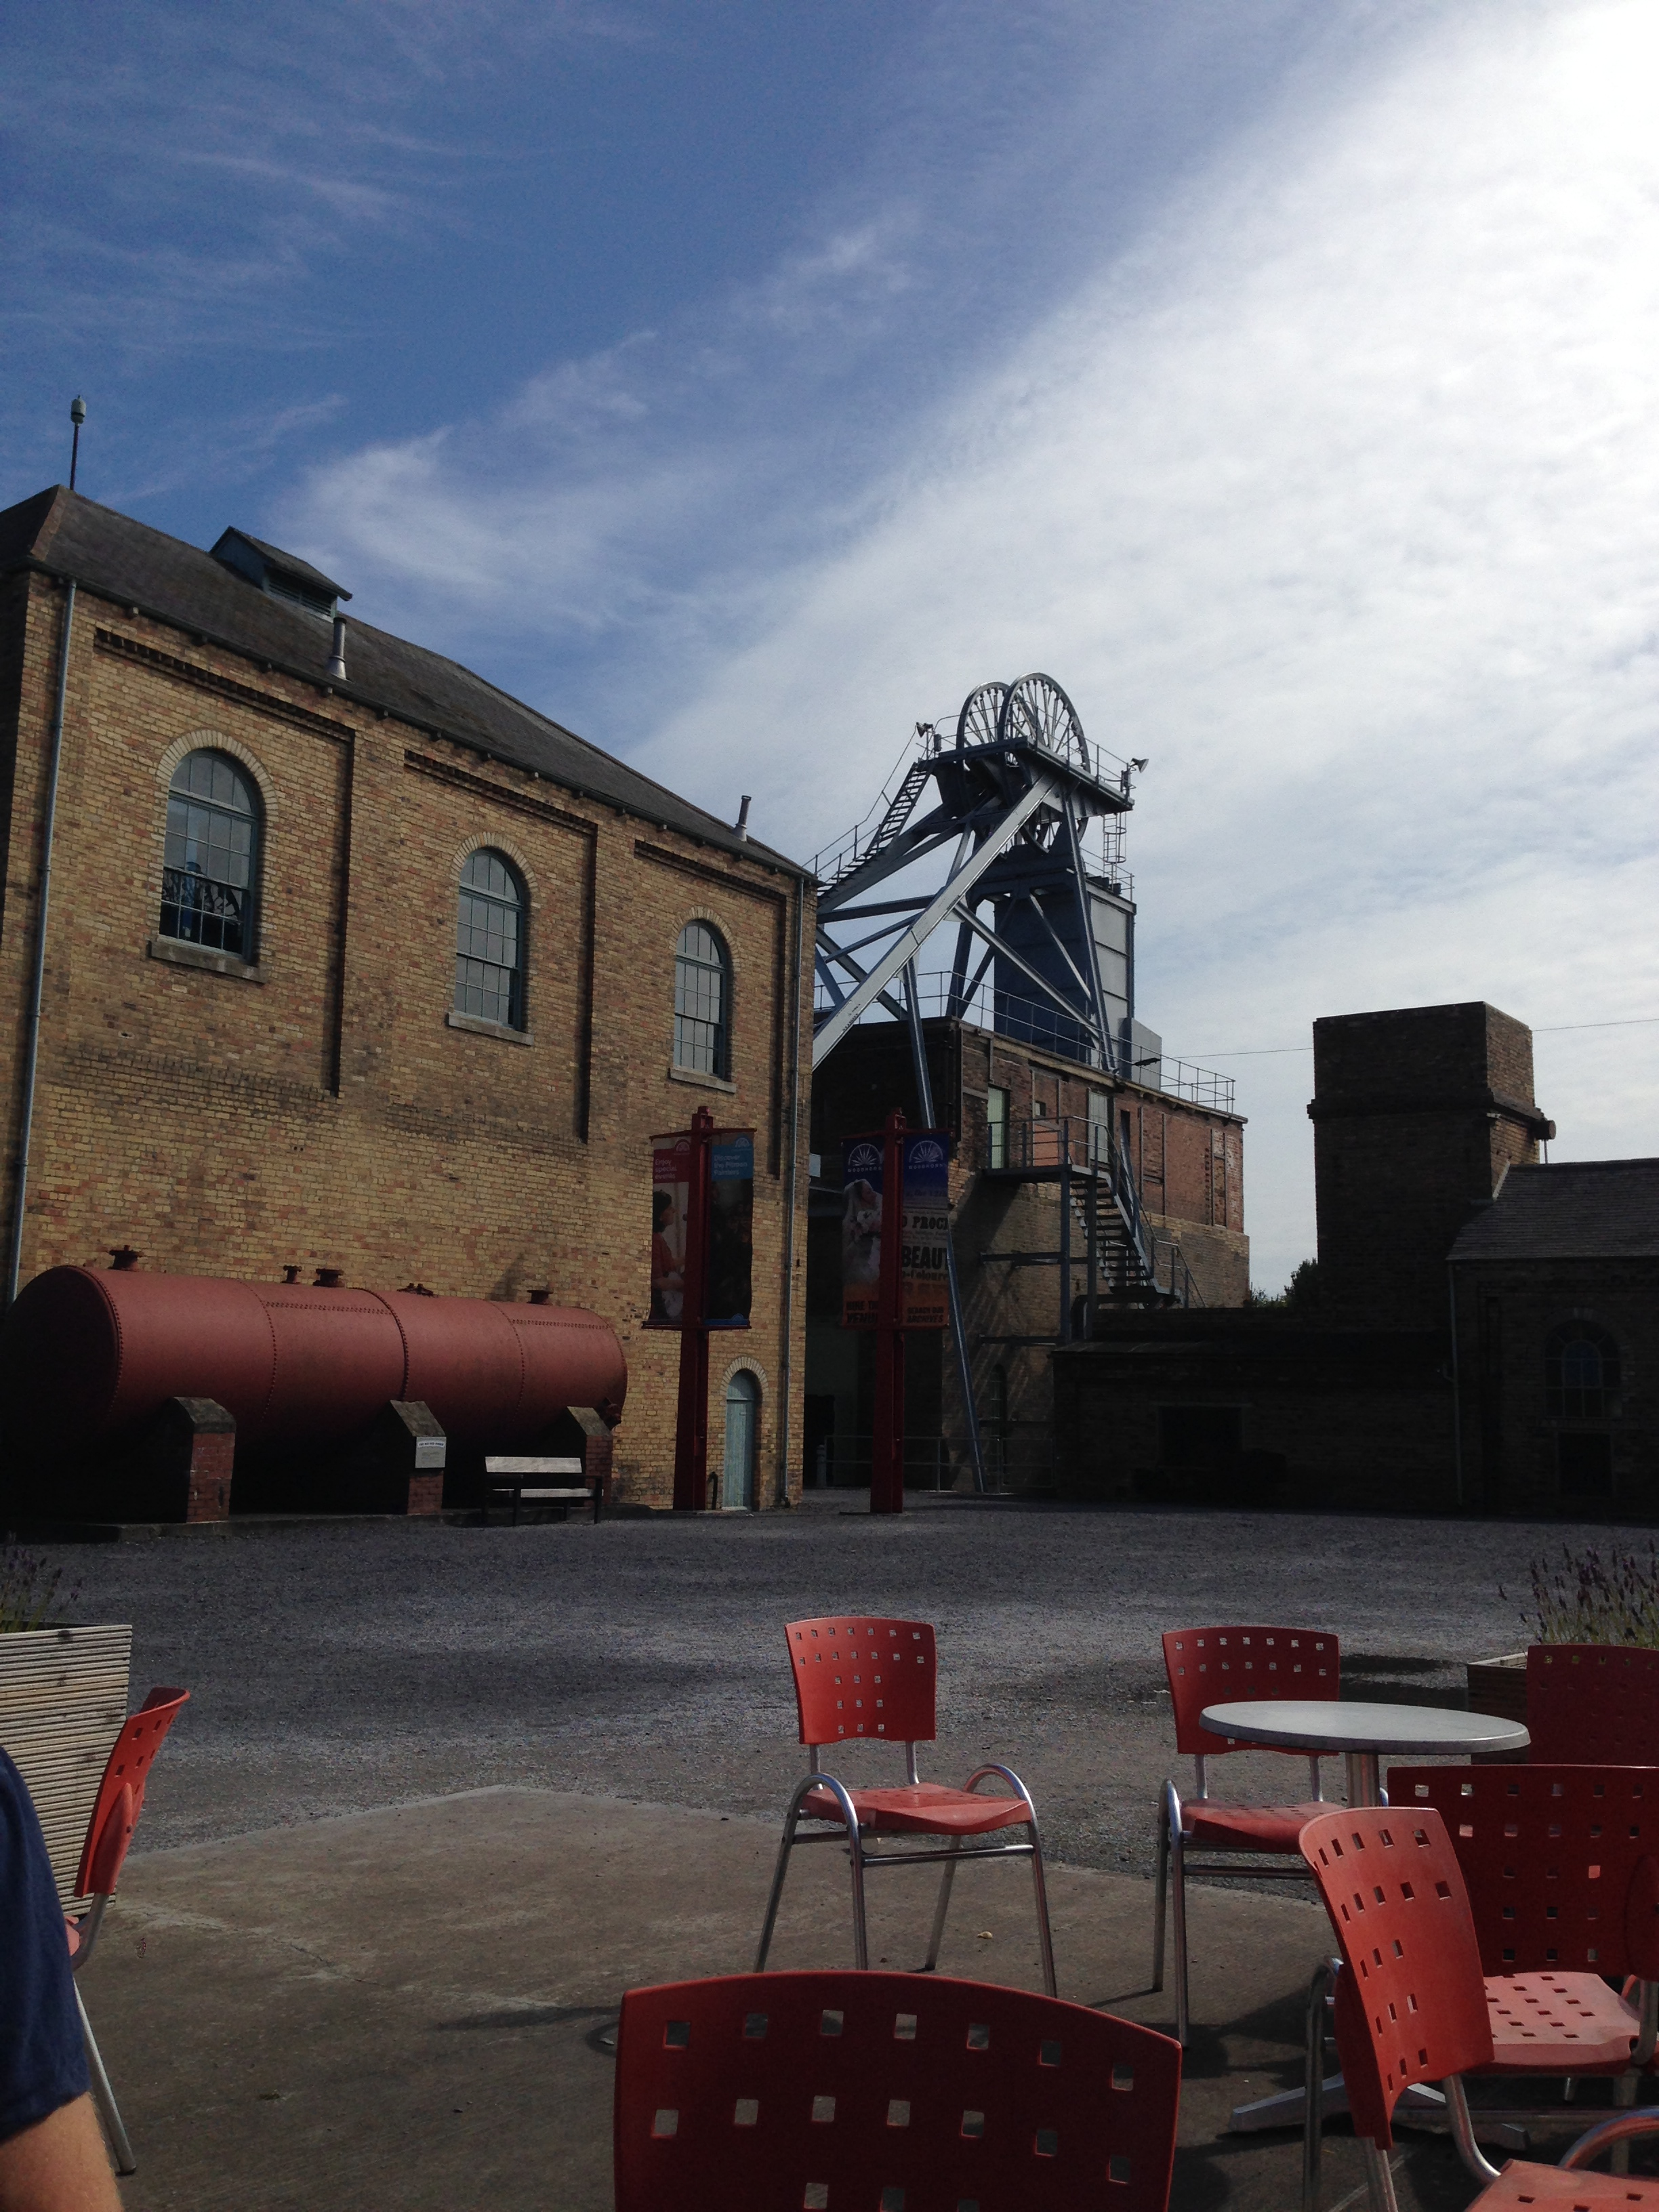 Woodhorn Colliery Museum outdoor seating cafe area overlooking wheel